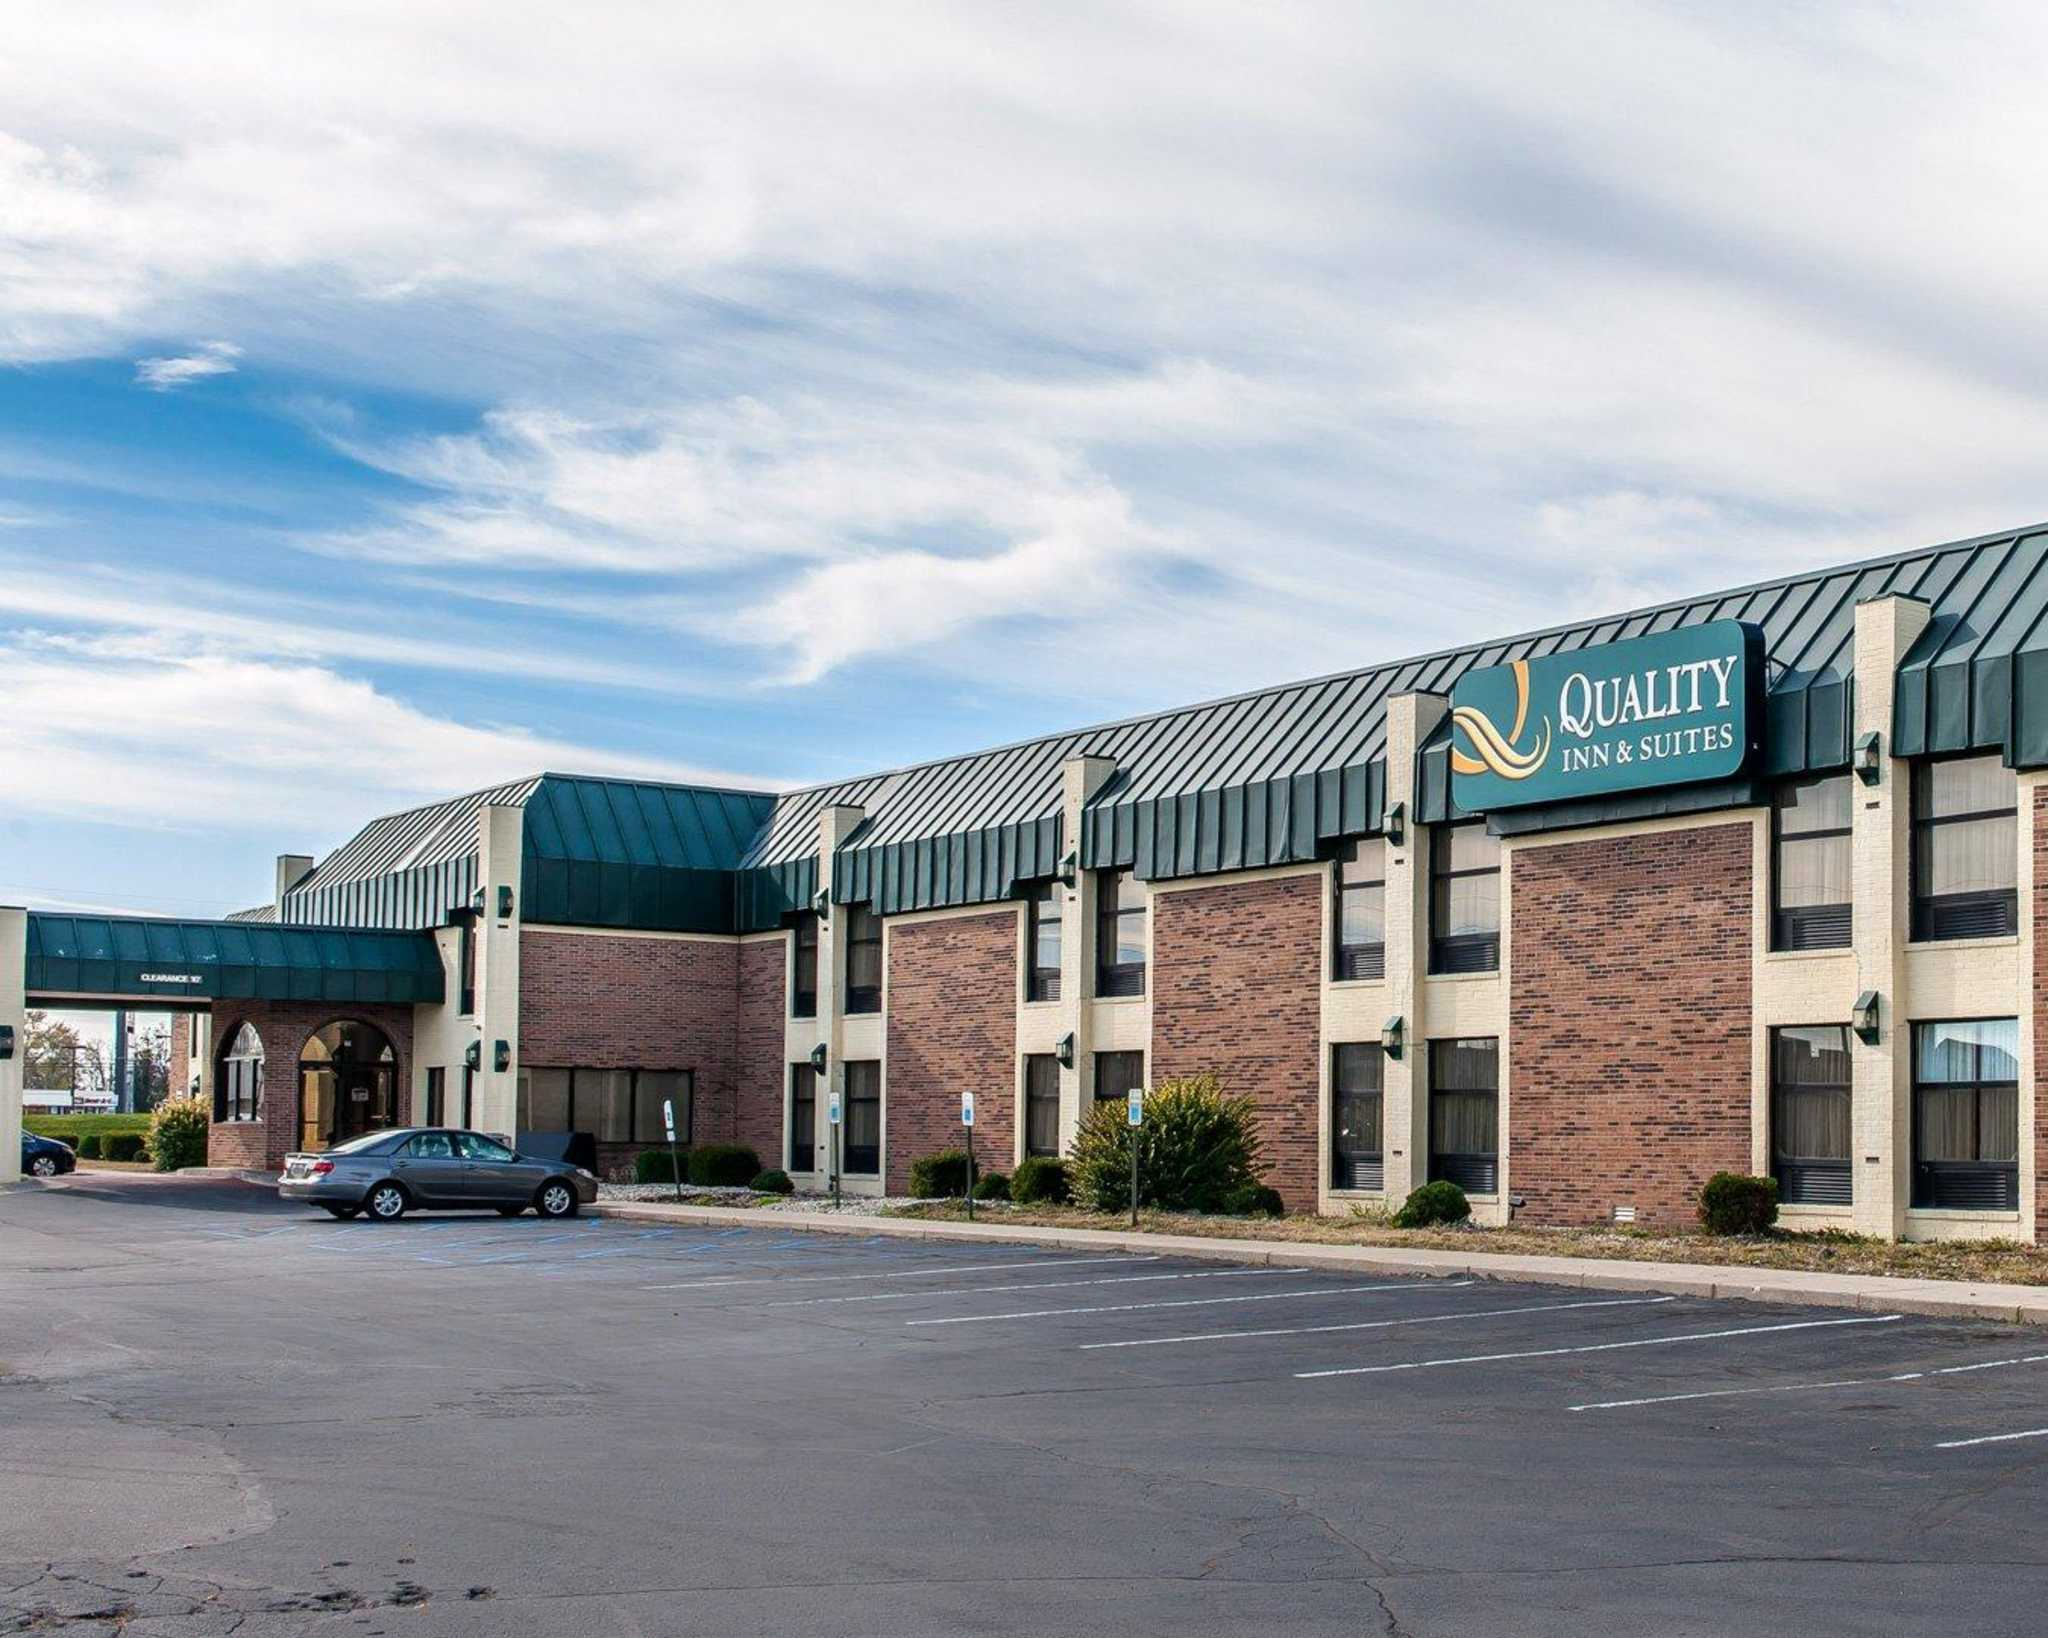 Quality Inn & Suites Shelbyville I-74 image 1